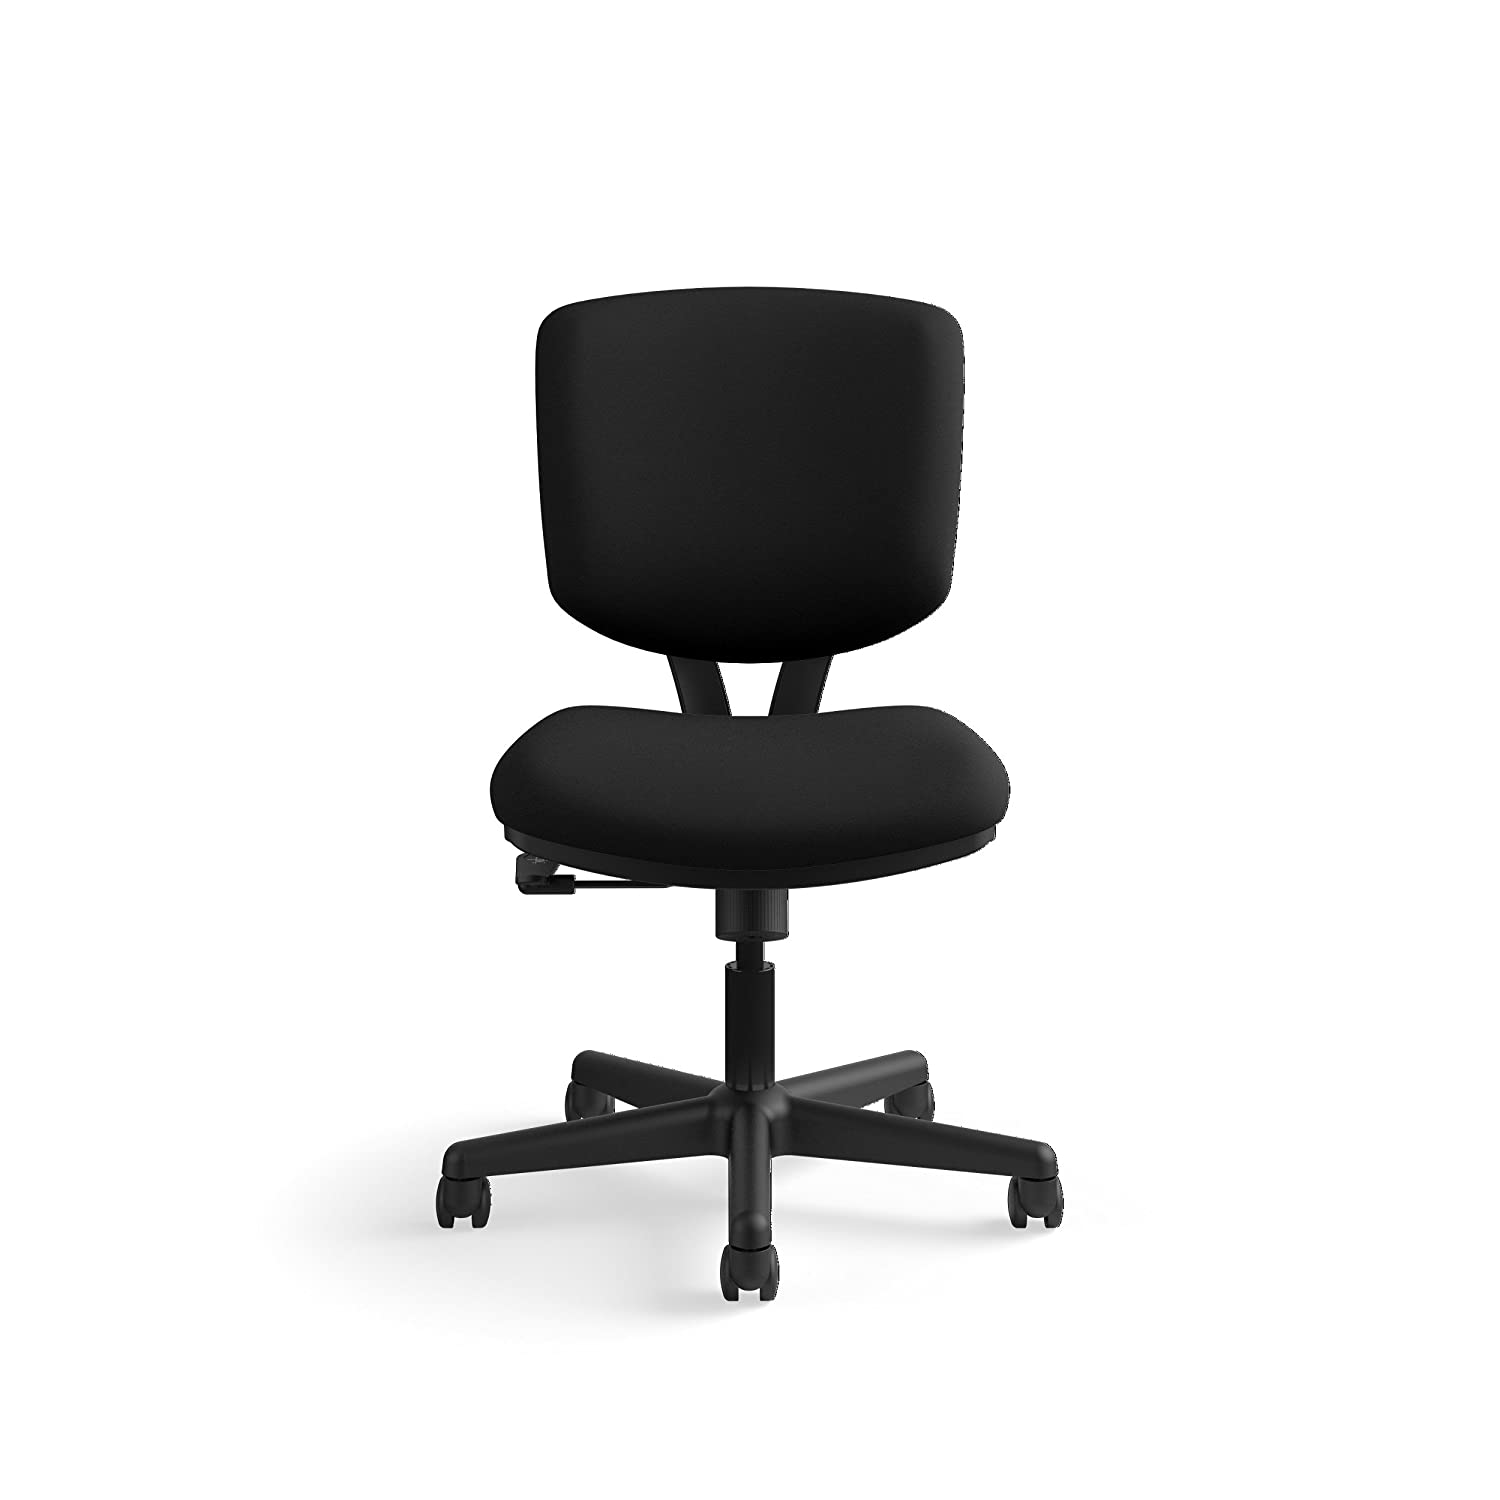 Amazon HON Volt Task Chair puter Chair for fice Desk